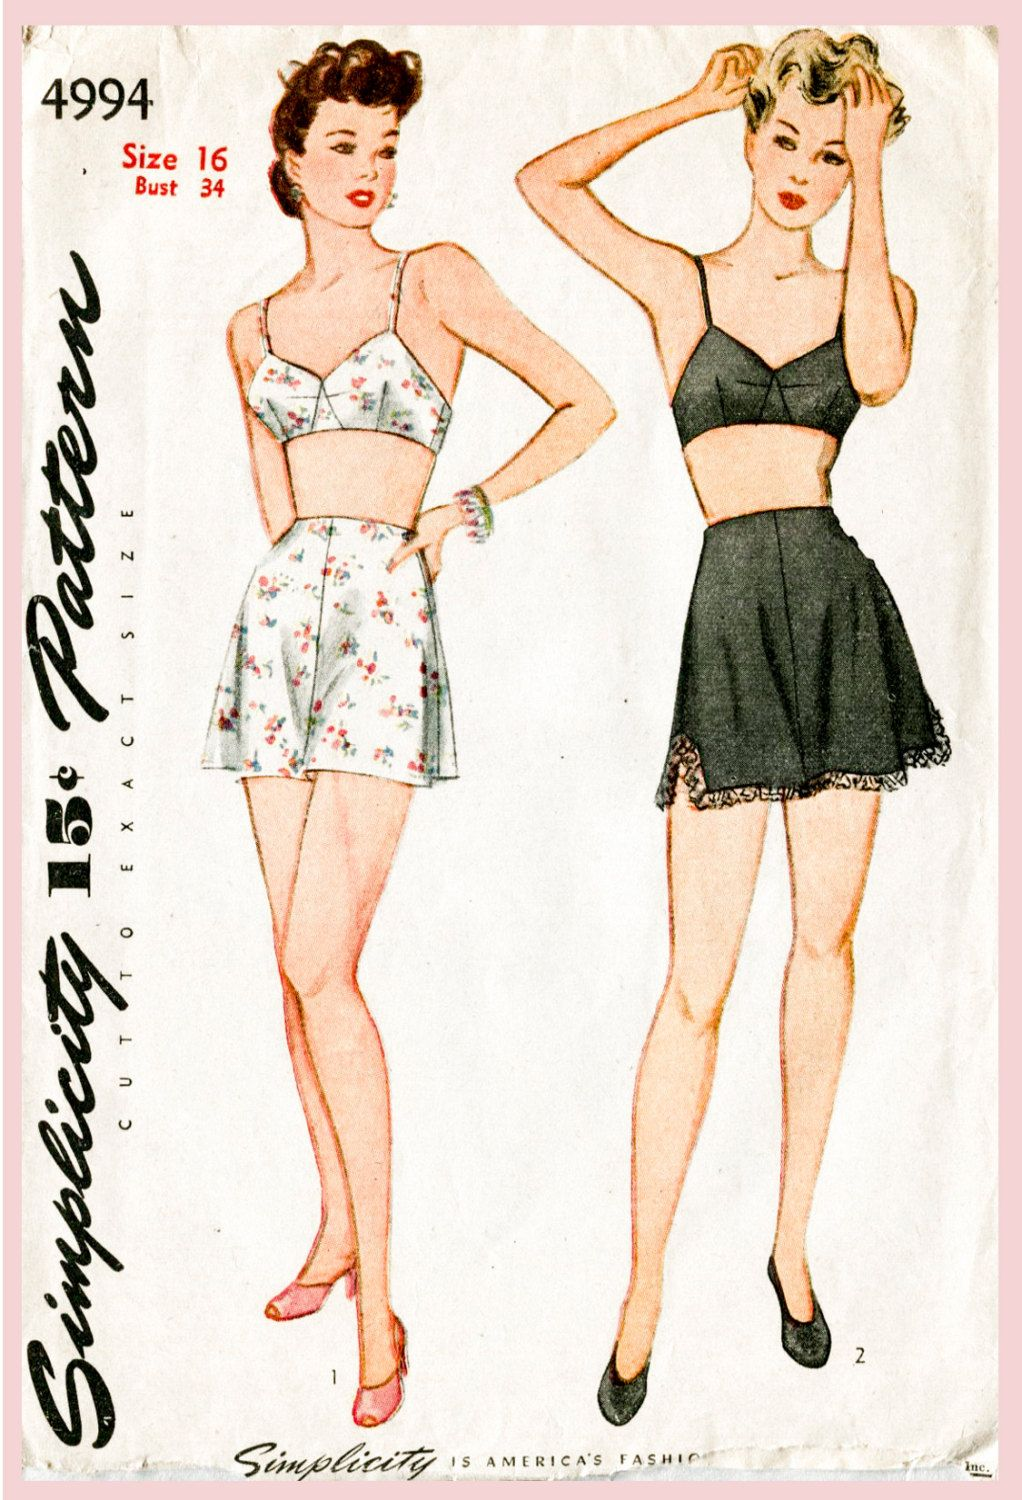 bd238f47c2 vintage sewing pattern 1940s 40s lingerie bra and tap shorts bust 34 b34  repro reproduction by LadyMarloweStudios on Etsy